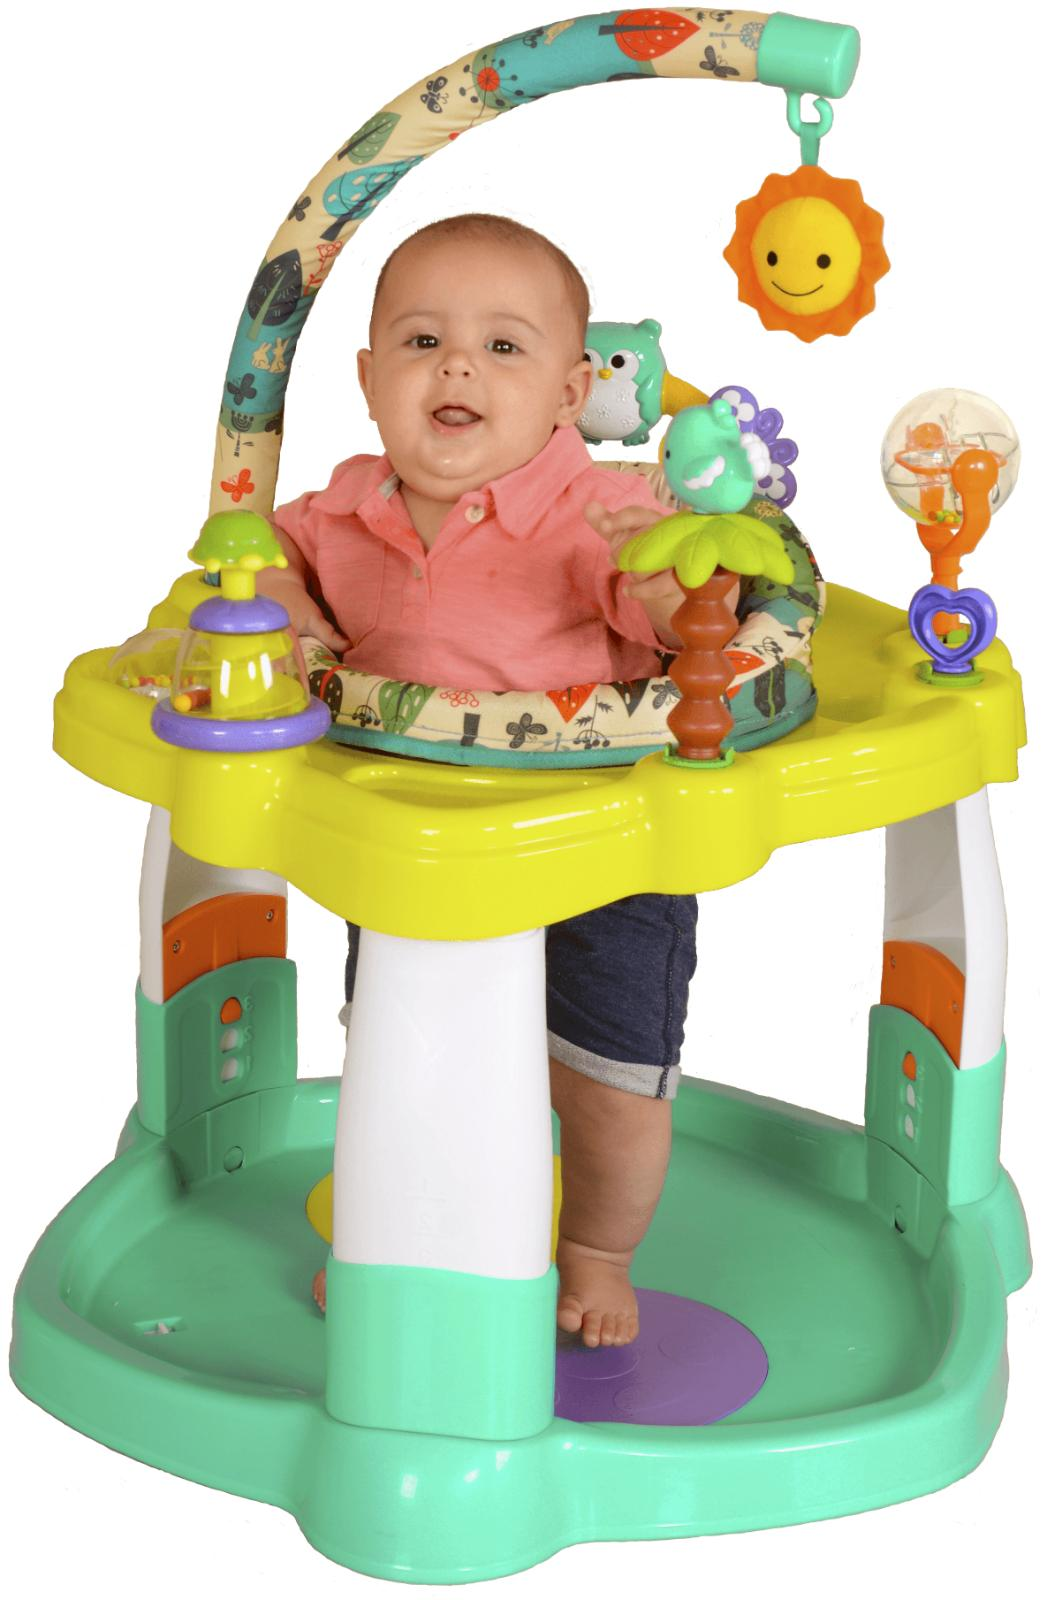 Creative Activity Center, Baby Playing,